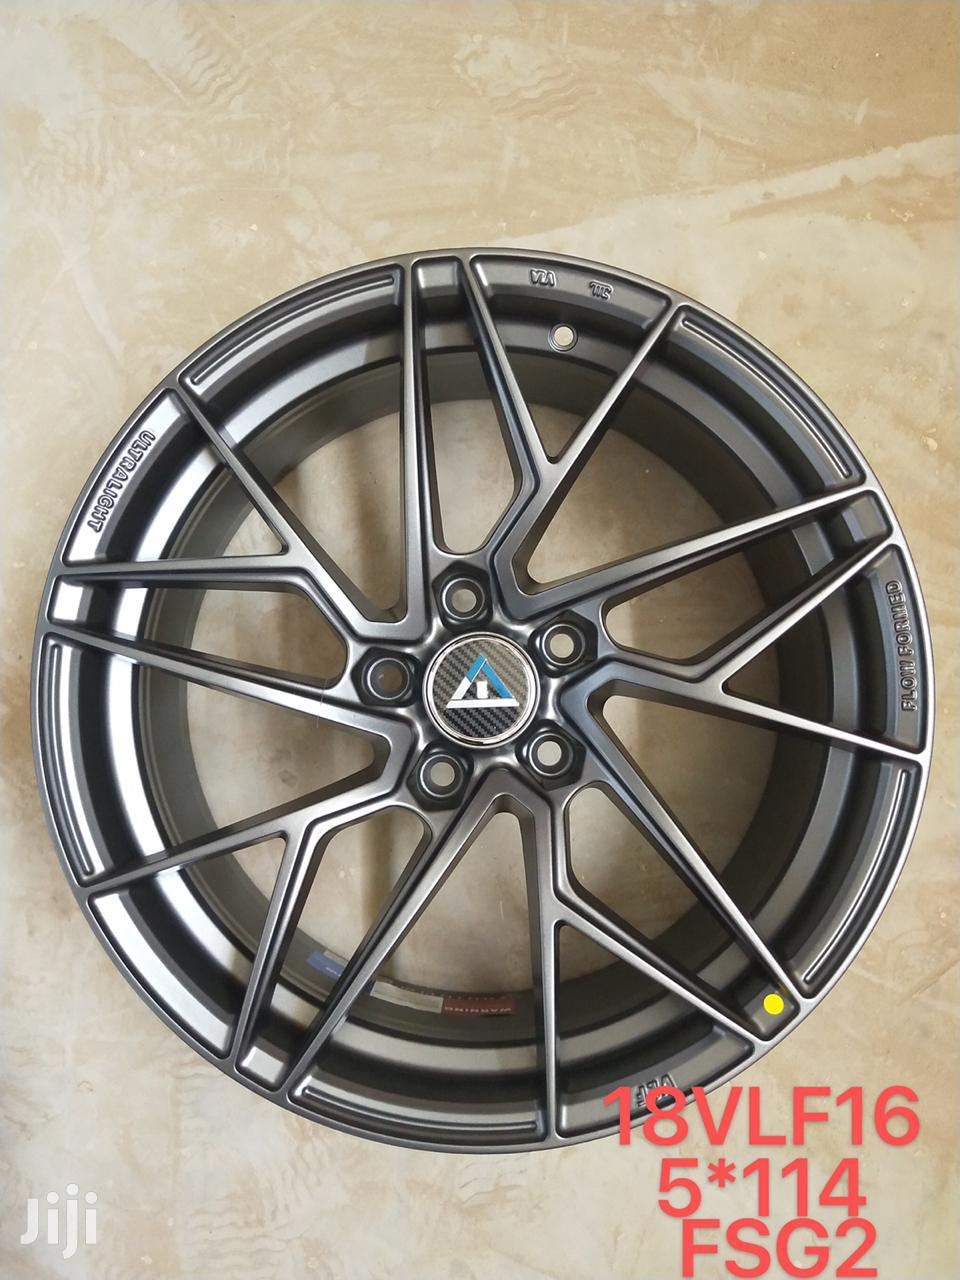 Original Rims for All Cars in All Sizes